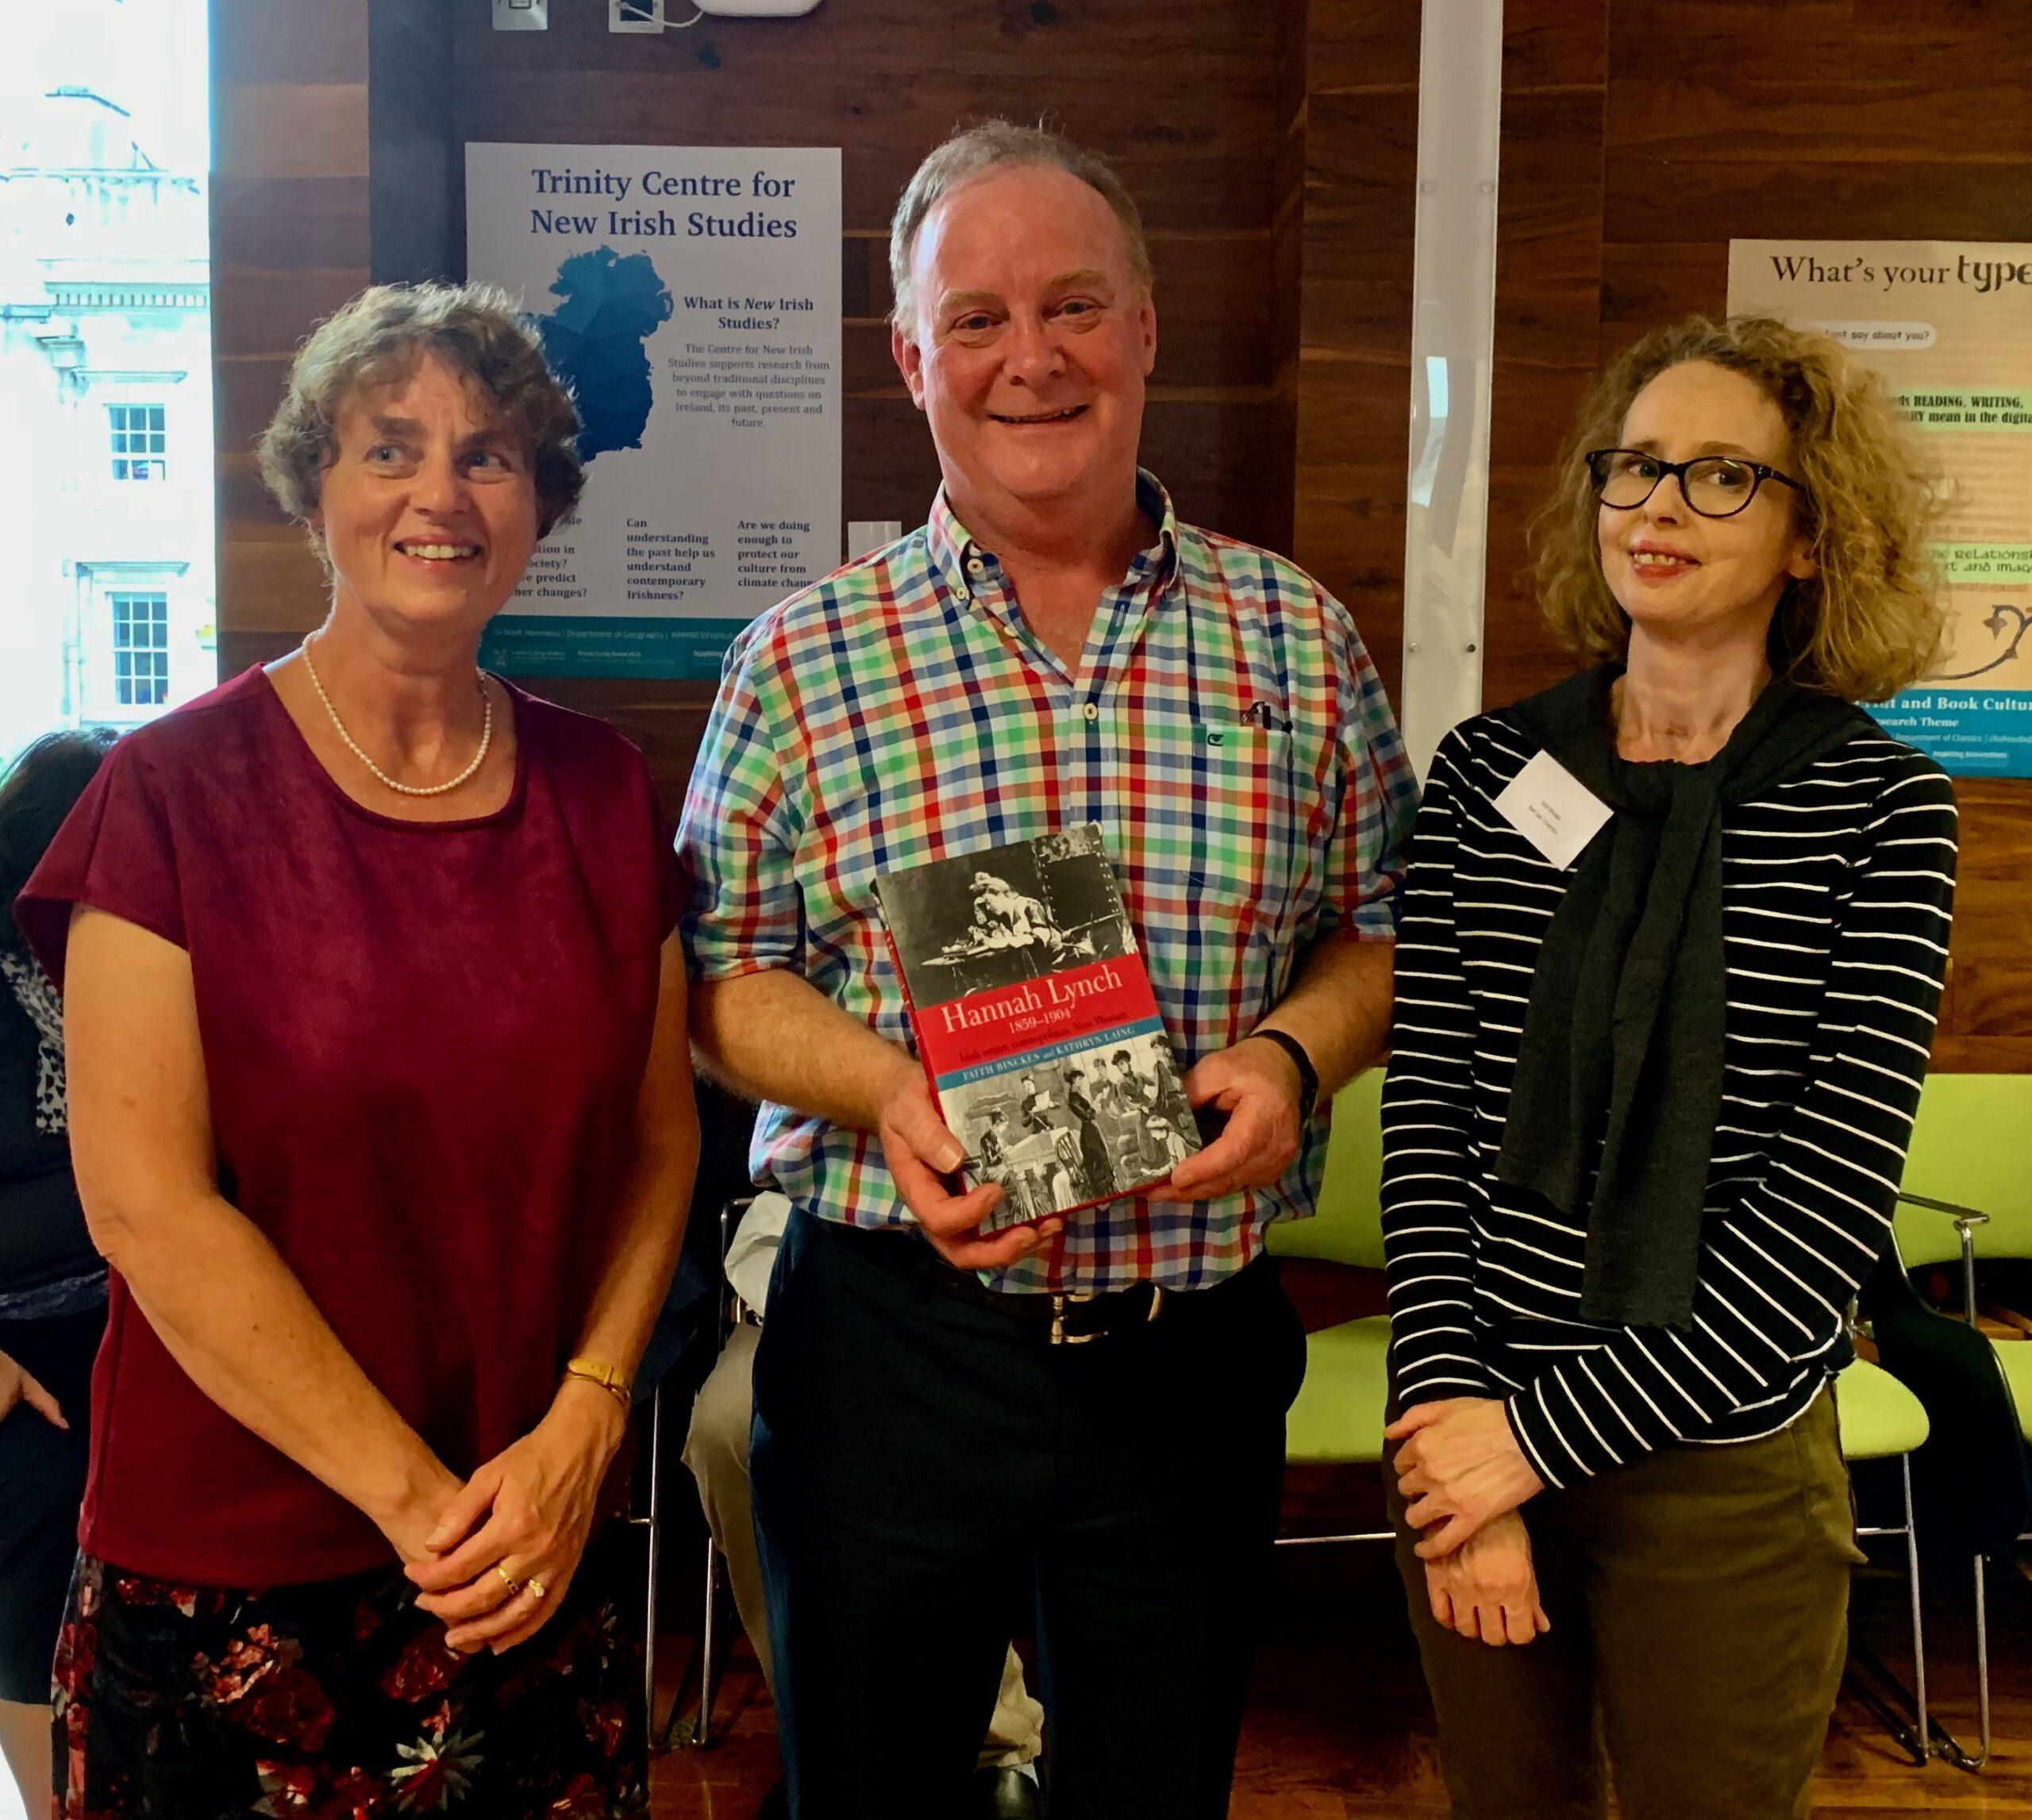 Hannah Lynch Book Launch, IASIL Conference, 24 July 2019. Names from left to right: Kathryn Laing, Michael Counahan (grand-nephew of Hannah Lynch), Faith Binckes